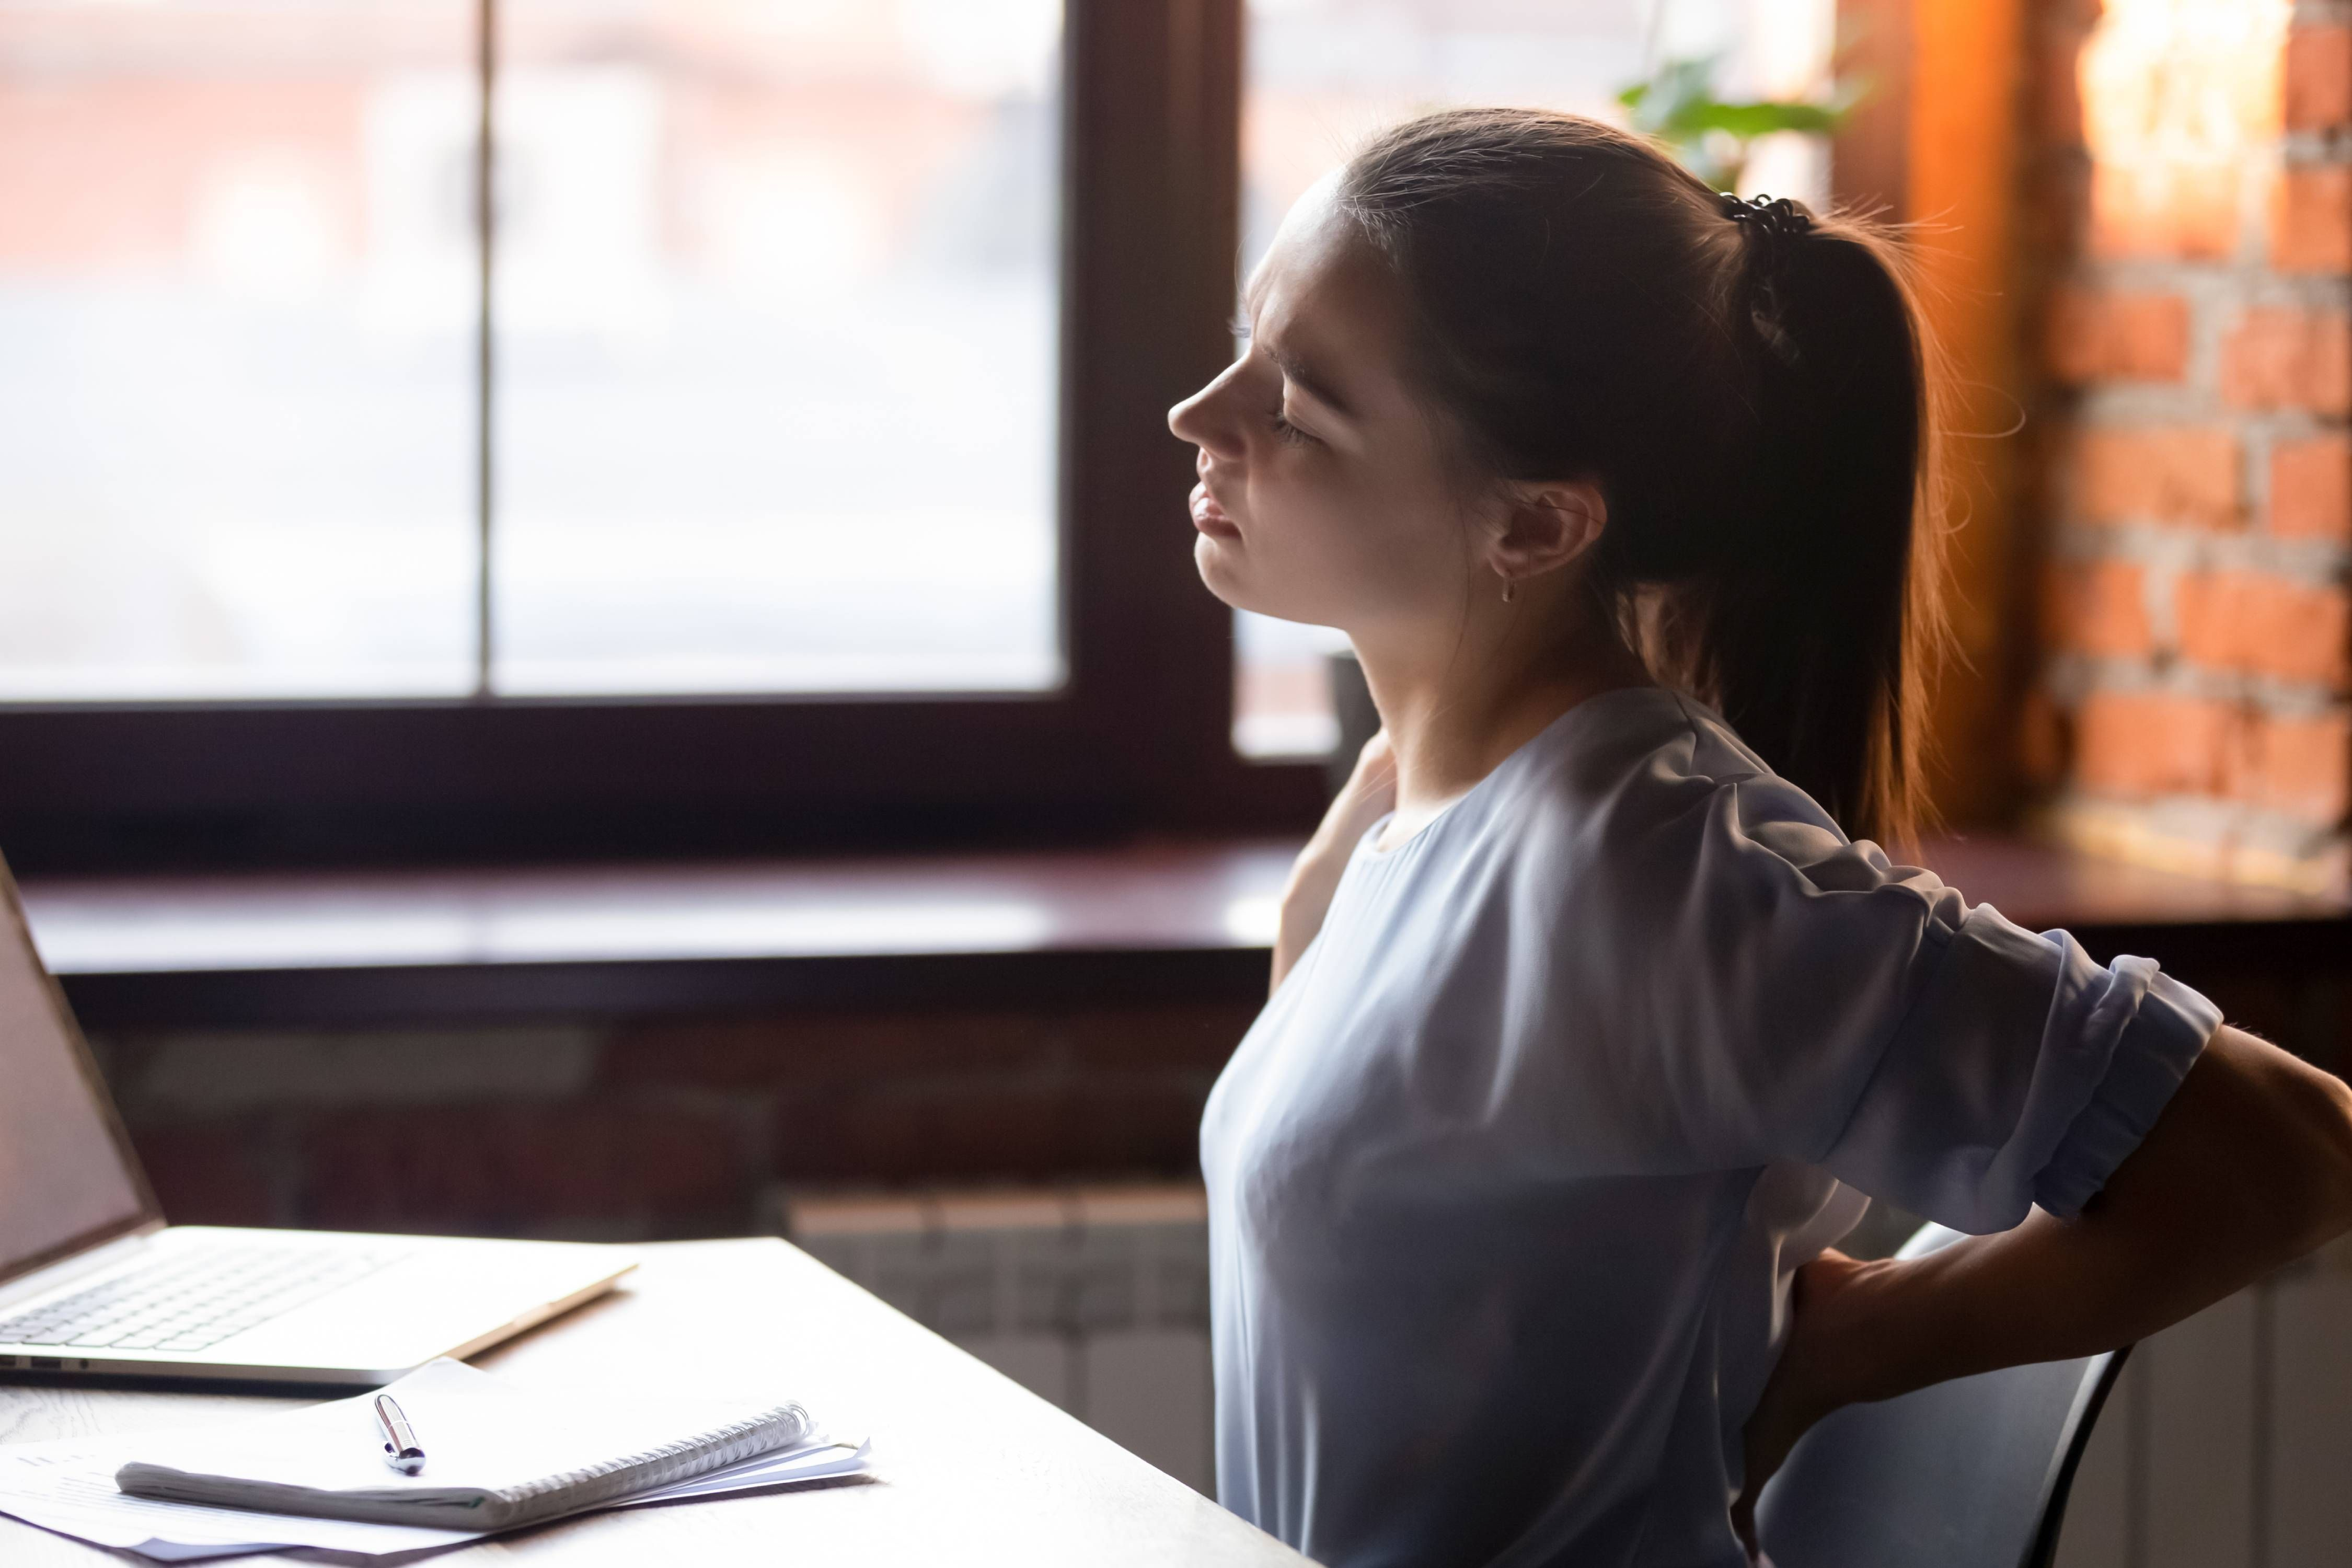 How a Chiropractor Can Help Your Posture